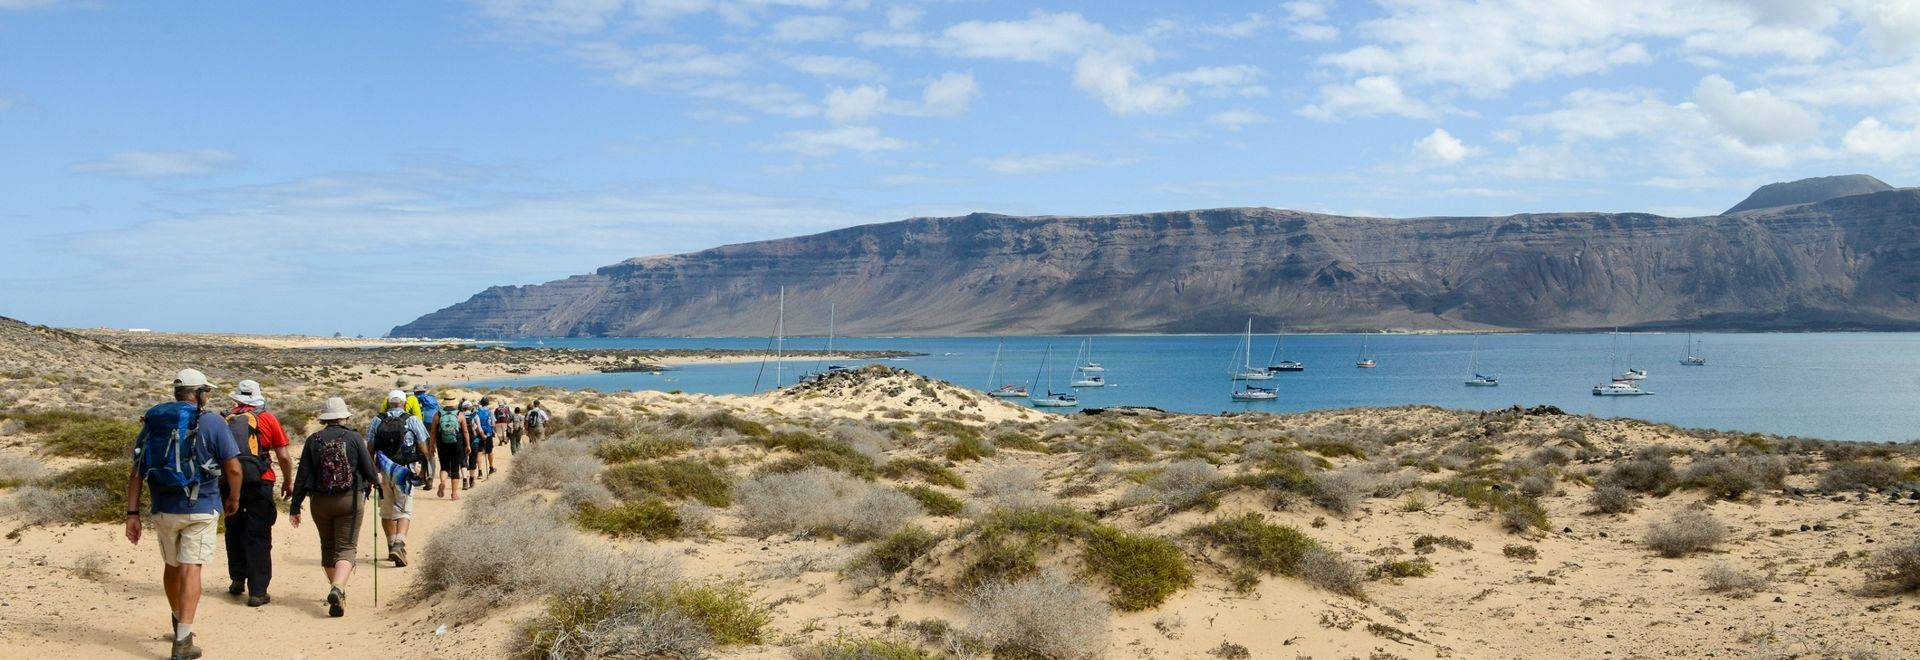 A group of tourists hinking on the sandy landscape of La Graciosa island (Canary islands, Spain), near Los Franceses beach. …